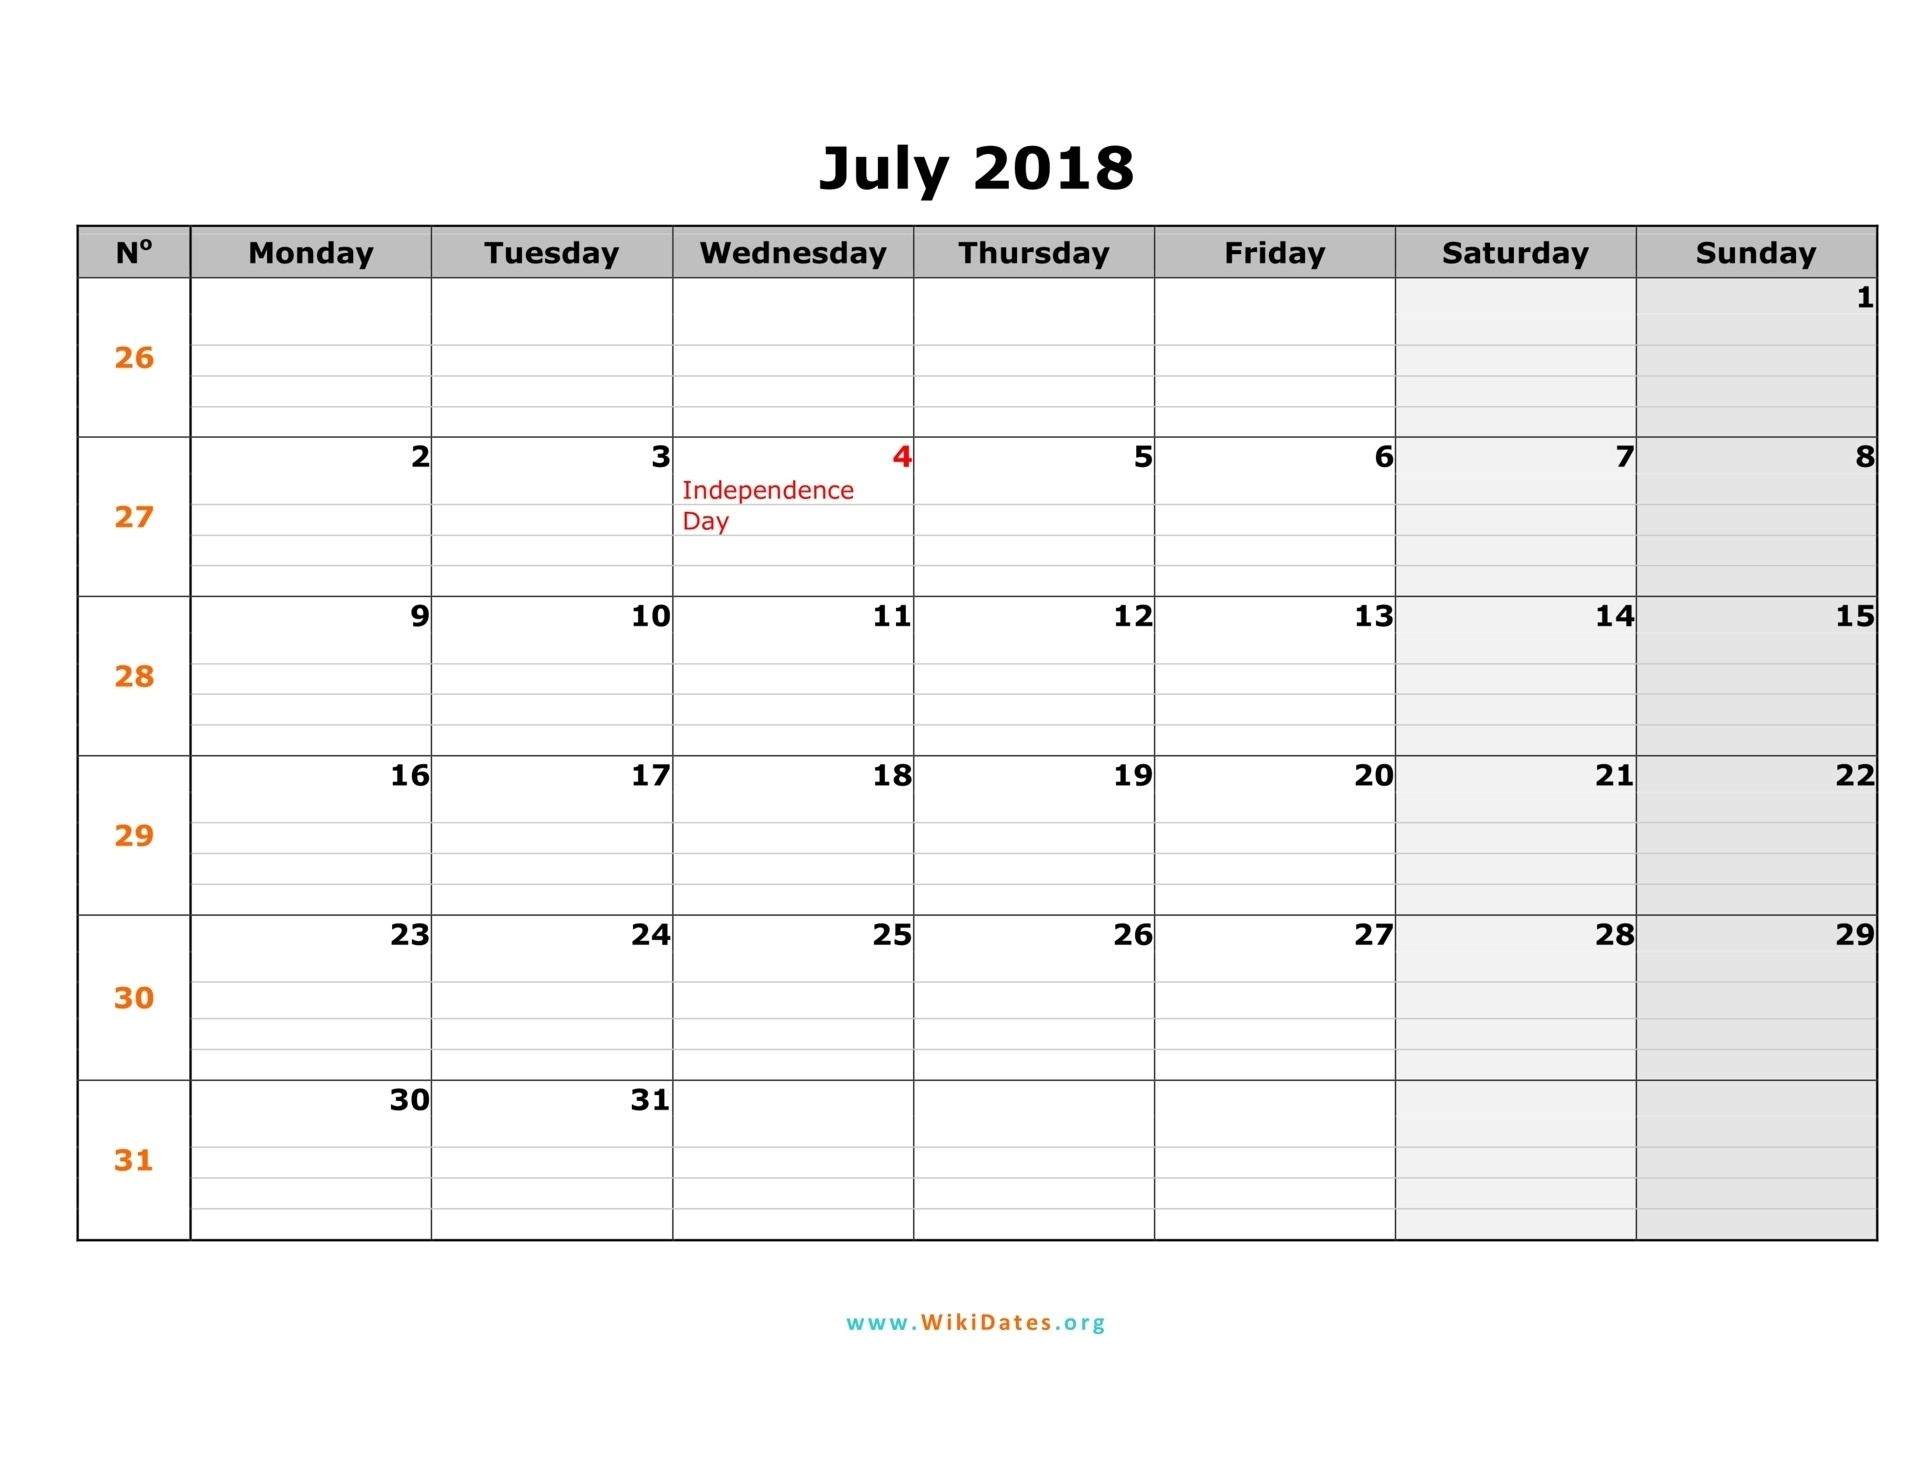 July 2018 Calendar With Bank Holidays